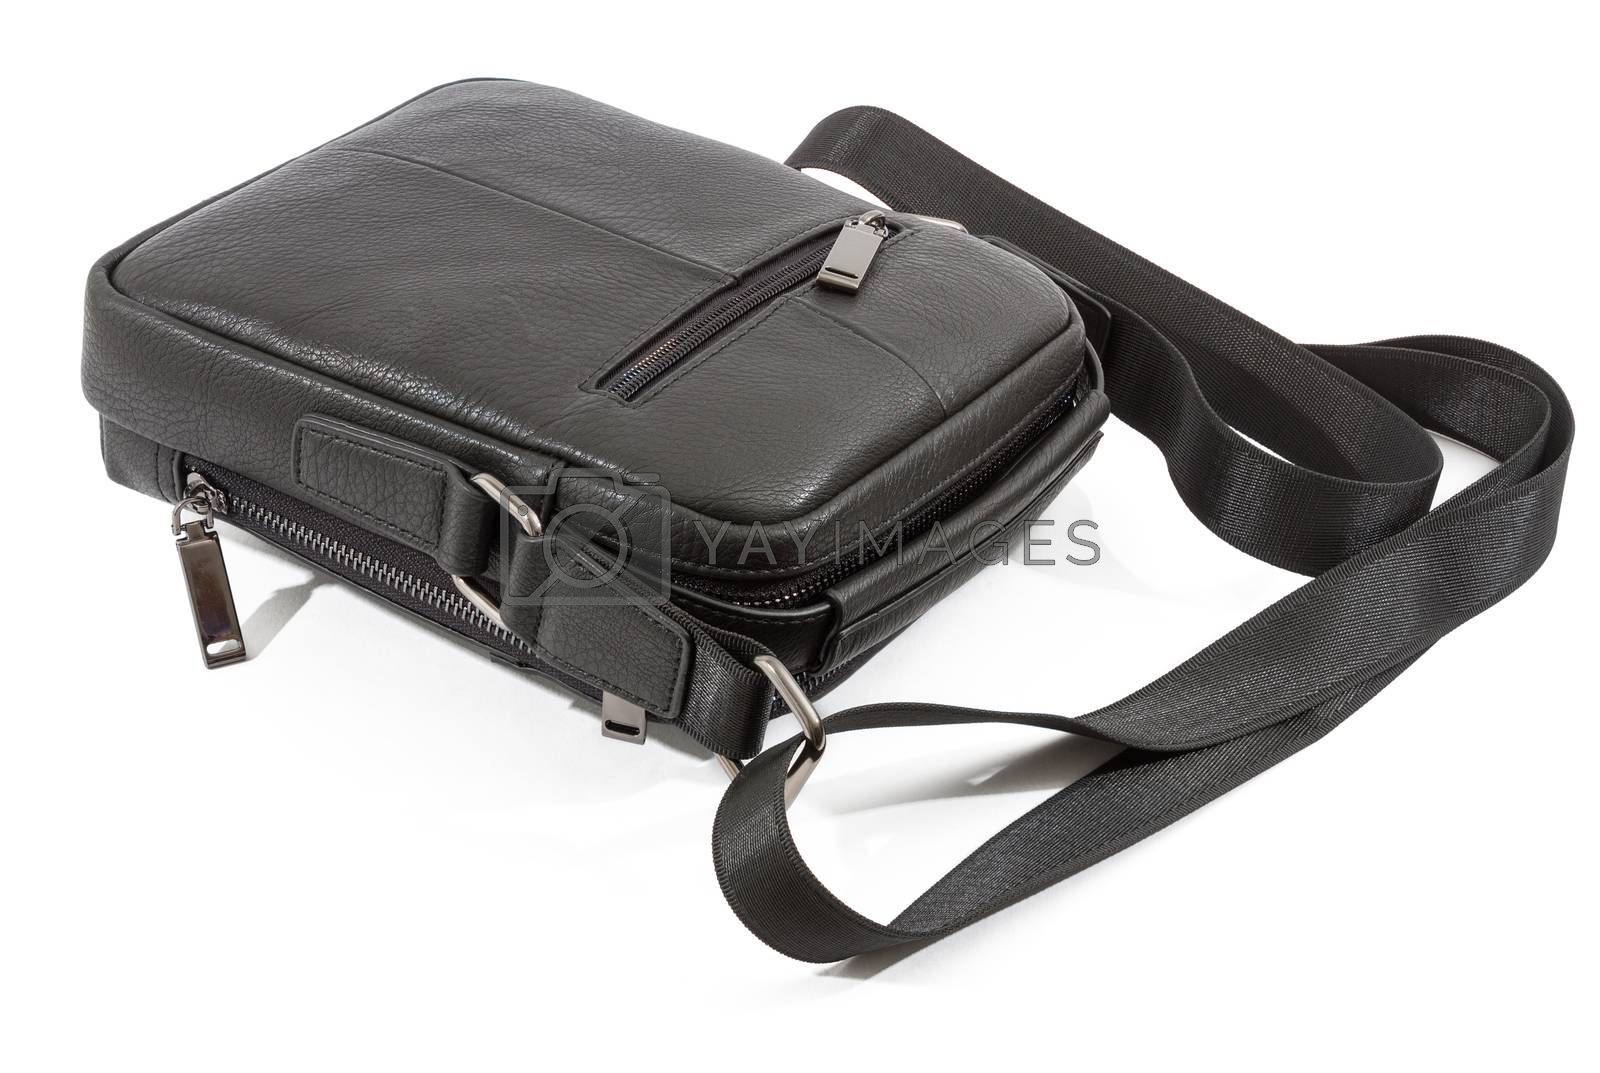 mens black leather bag isolated on white background